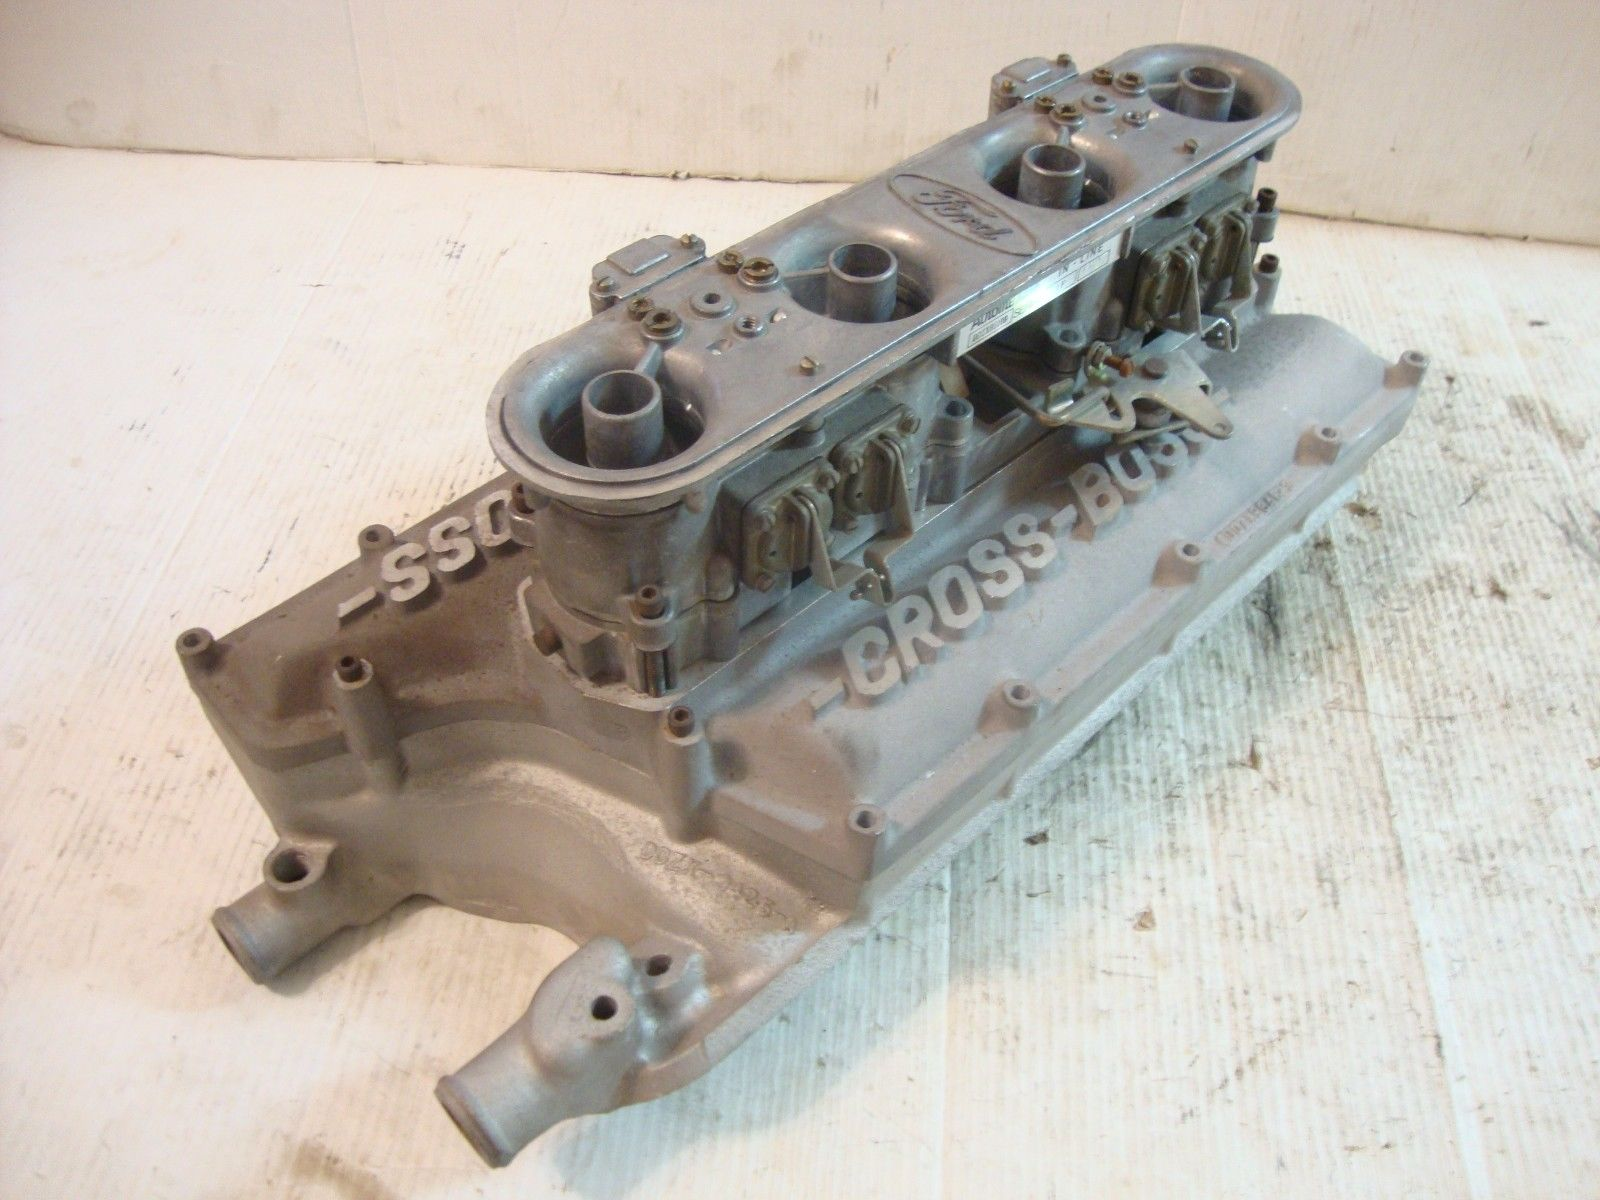 Awesome Induction: Autolite Inline Four Barrel and Cross Boss Intake For Sale!